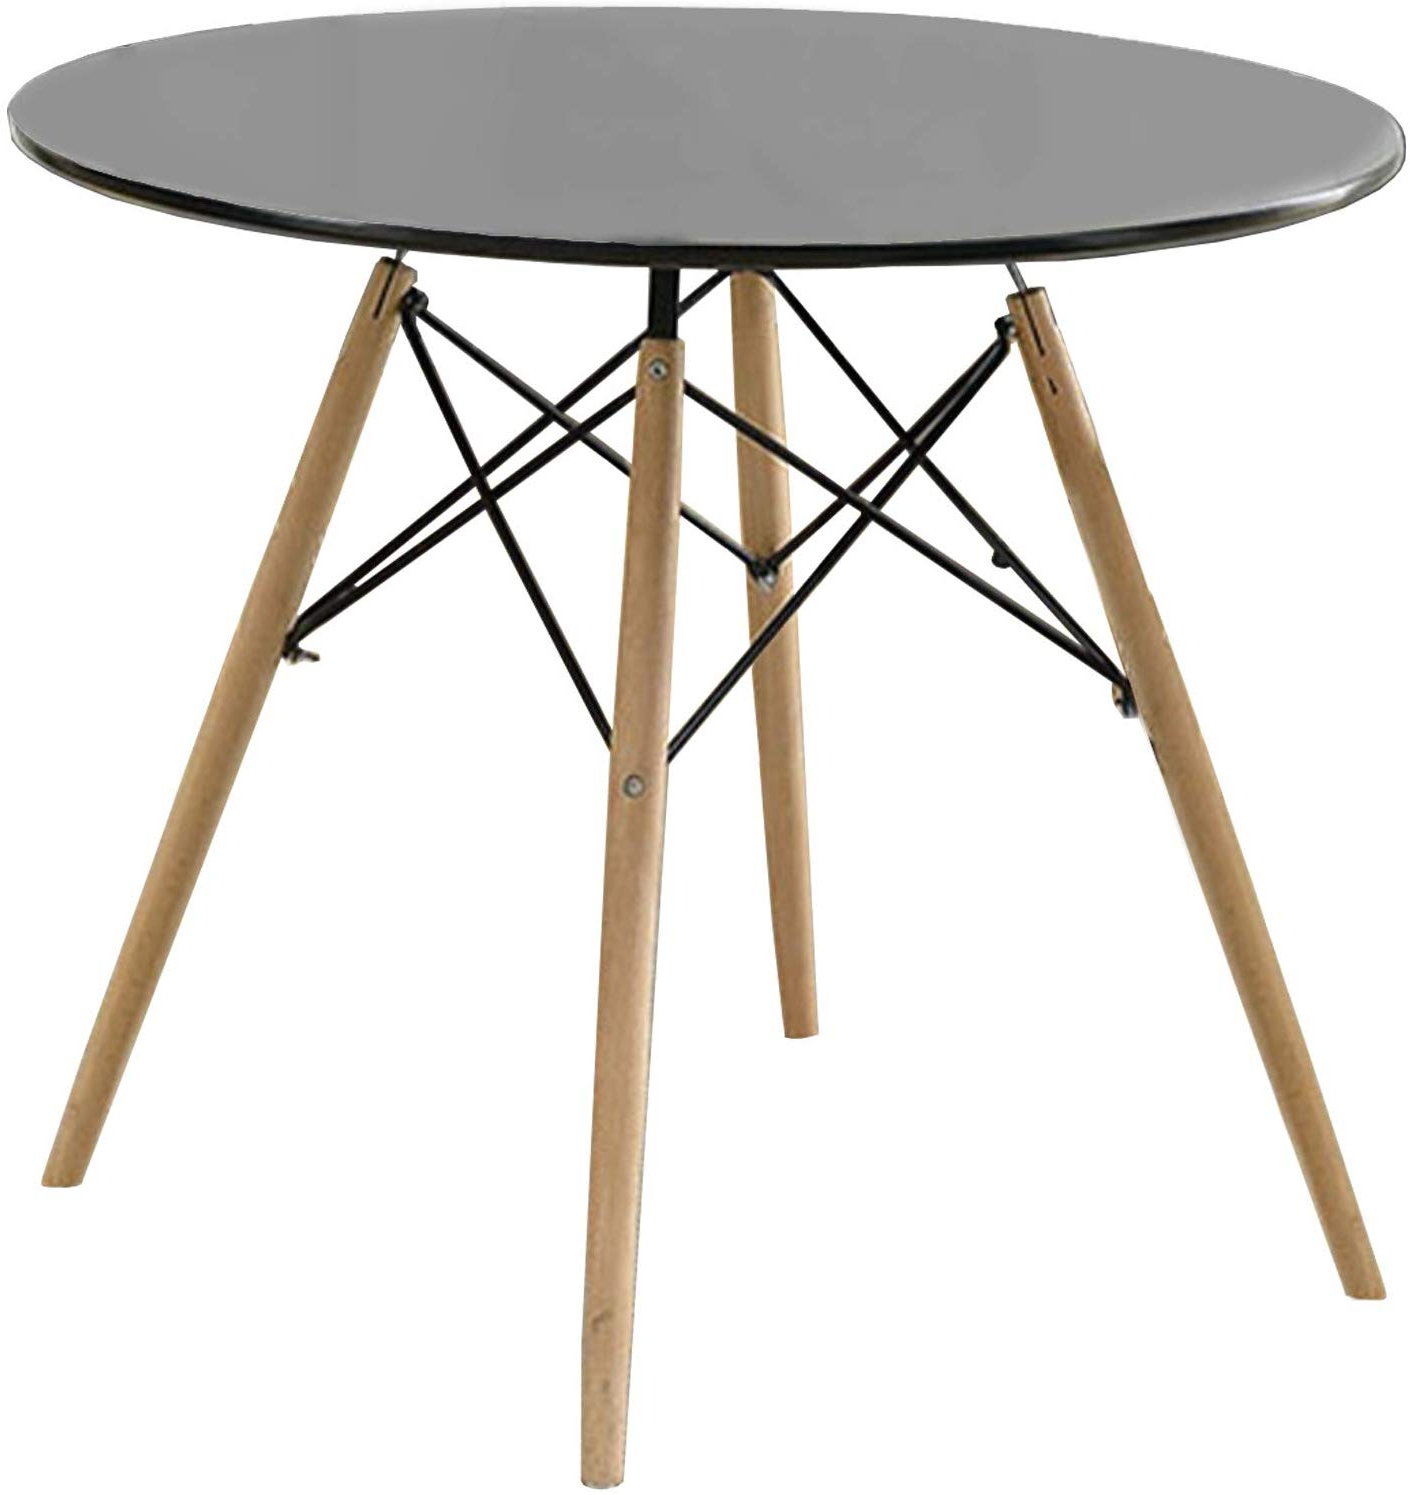 Round Dining Tables With Glass Top Within Most Up To Date Amazon – Benzara Round Dining Table With Metal Legs And (View 11 of 30)